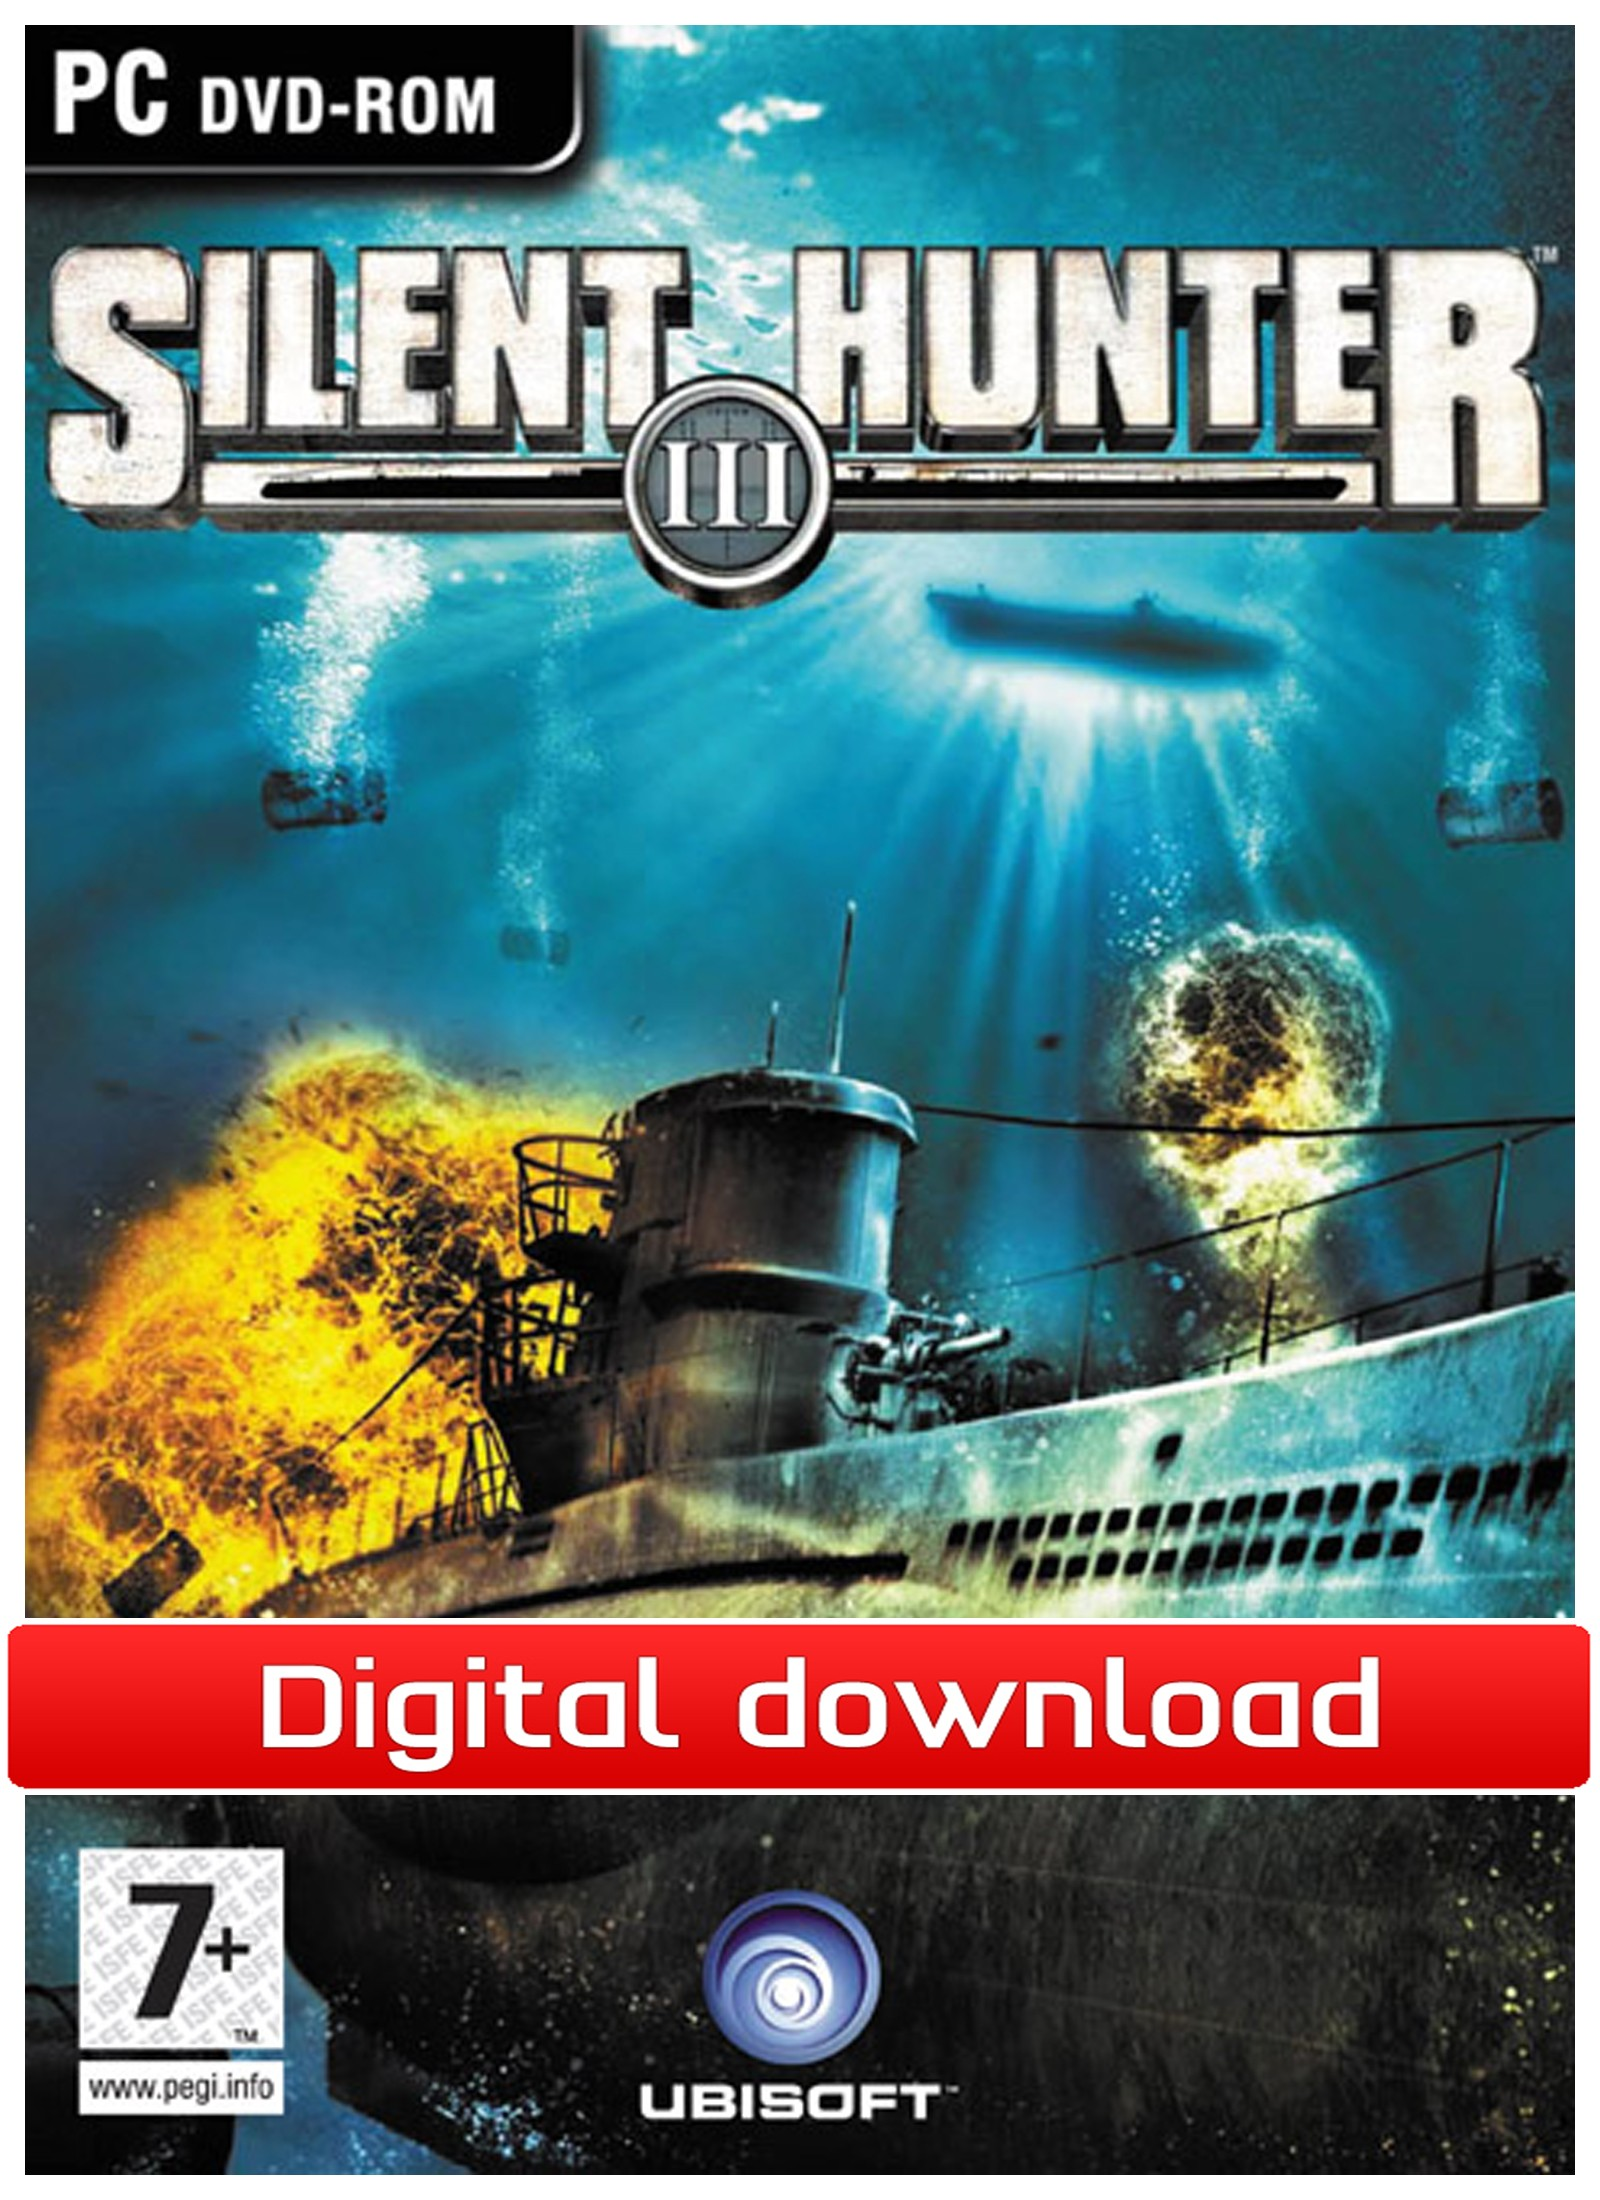 38800 : Silent Hunter III (PC nedlastning)